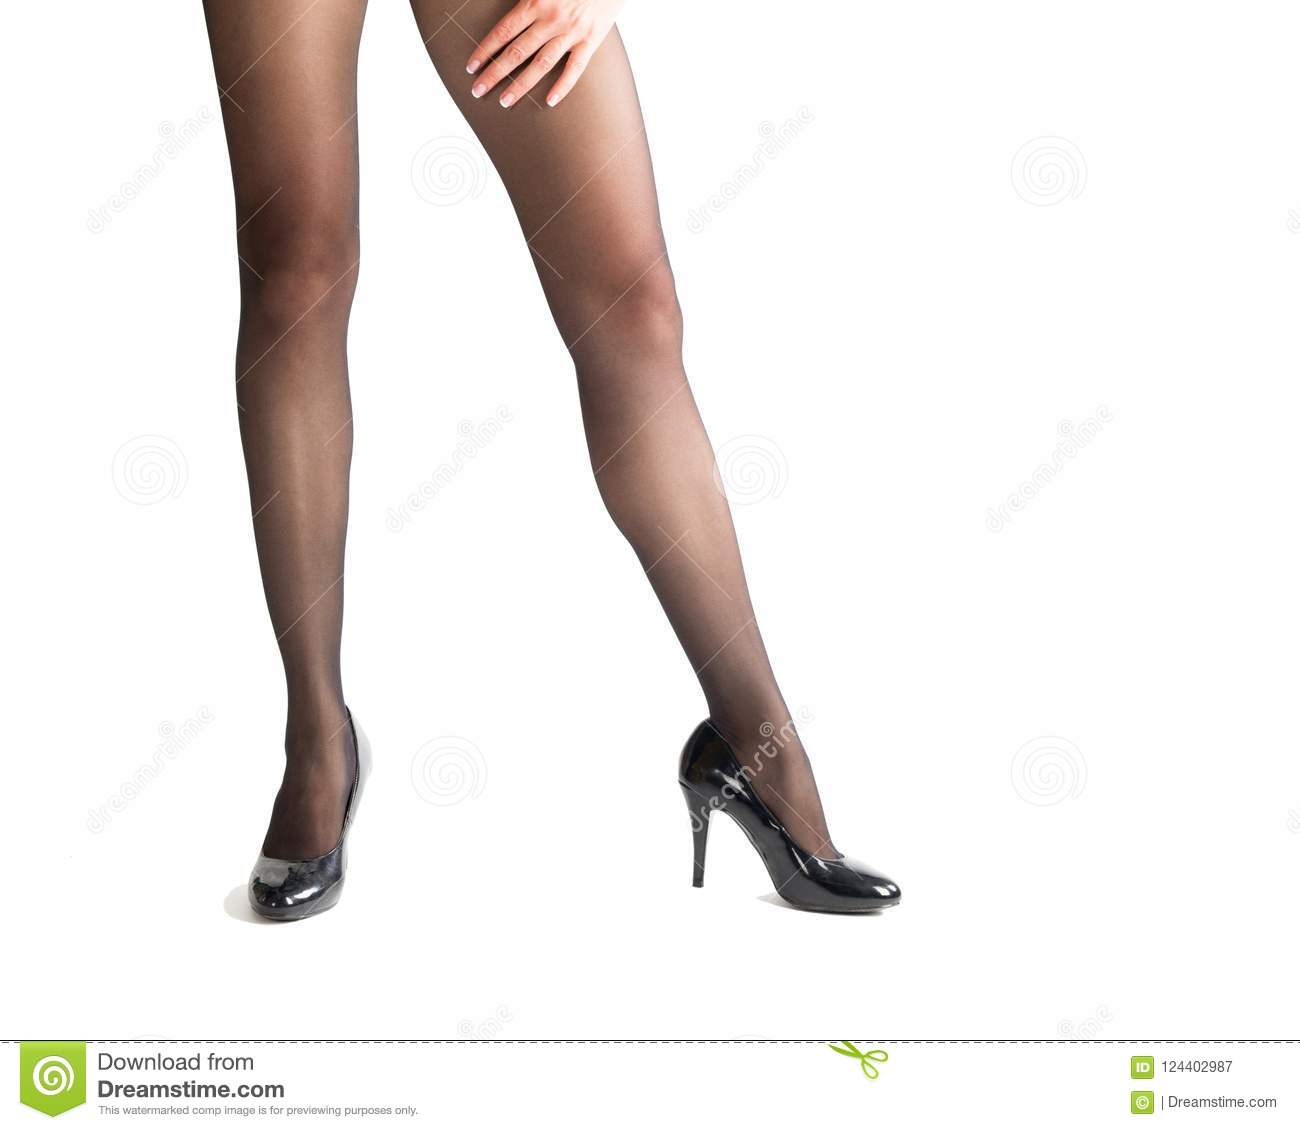 a535c544602 Slim Female Legs In Classic Black Shoes And Black Tights